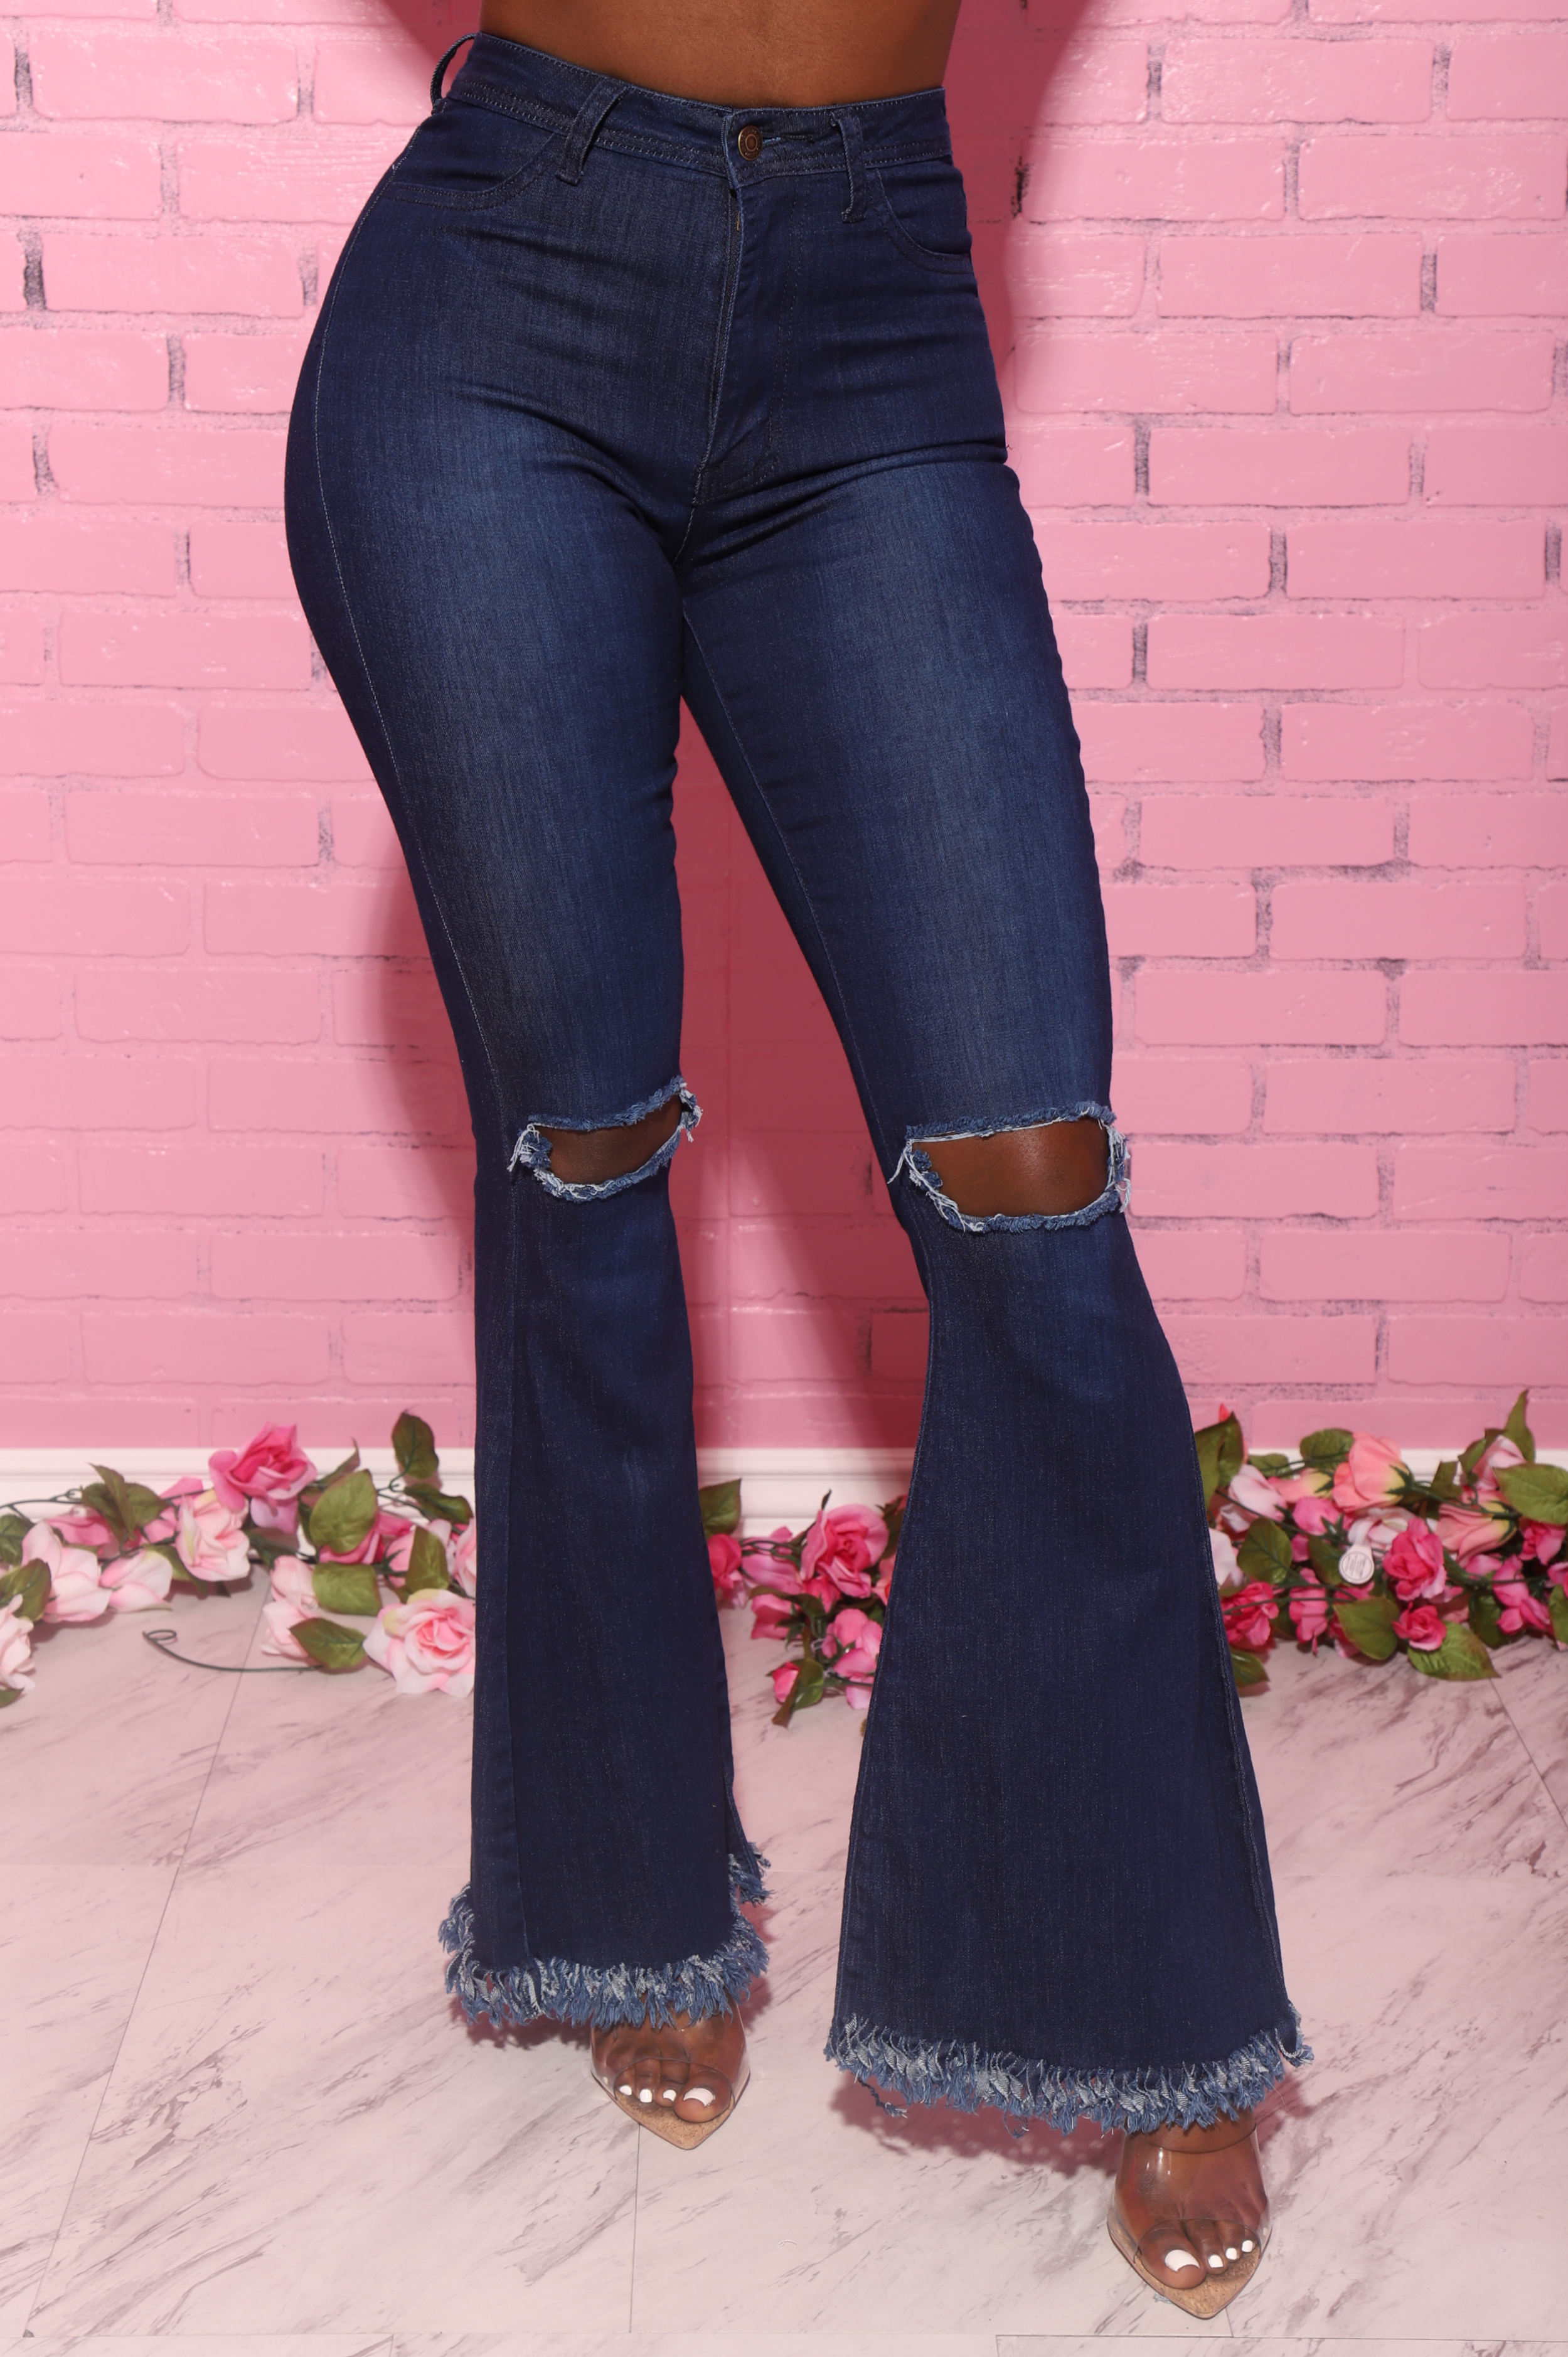 Frontline High Rise Frayed Bell Bottom Jeans - Dark Wash - Swank A Posh